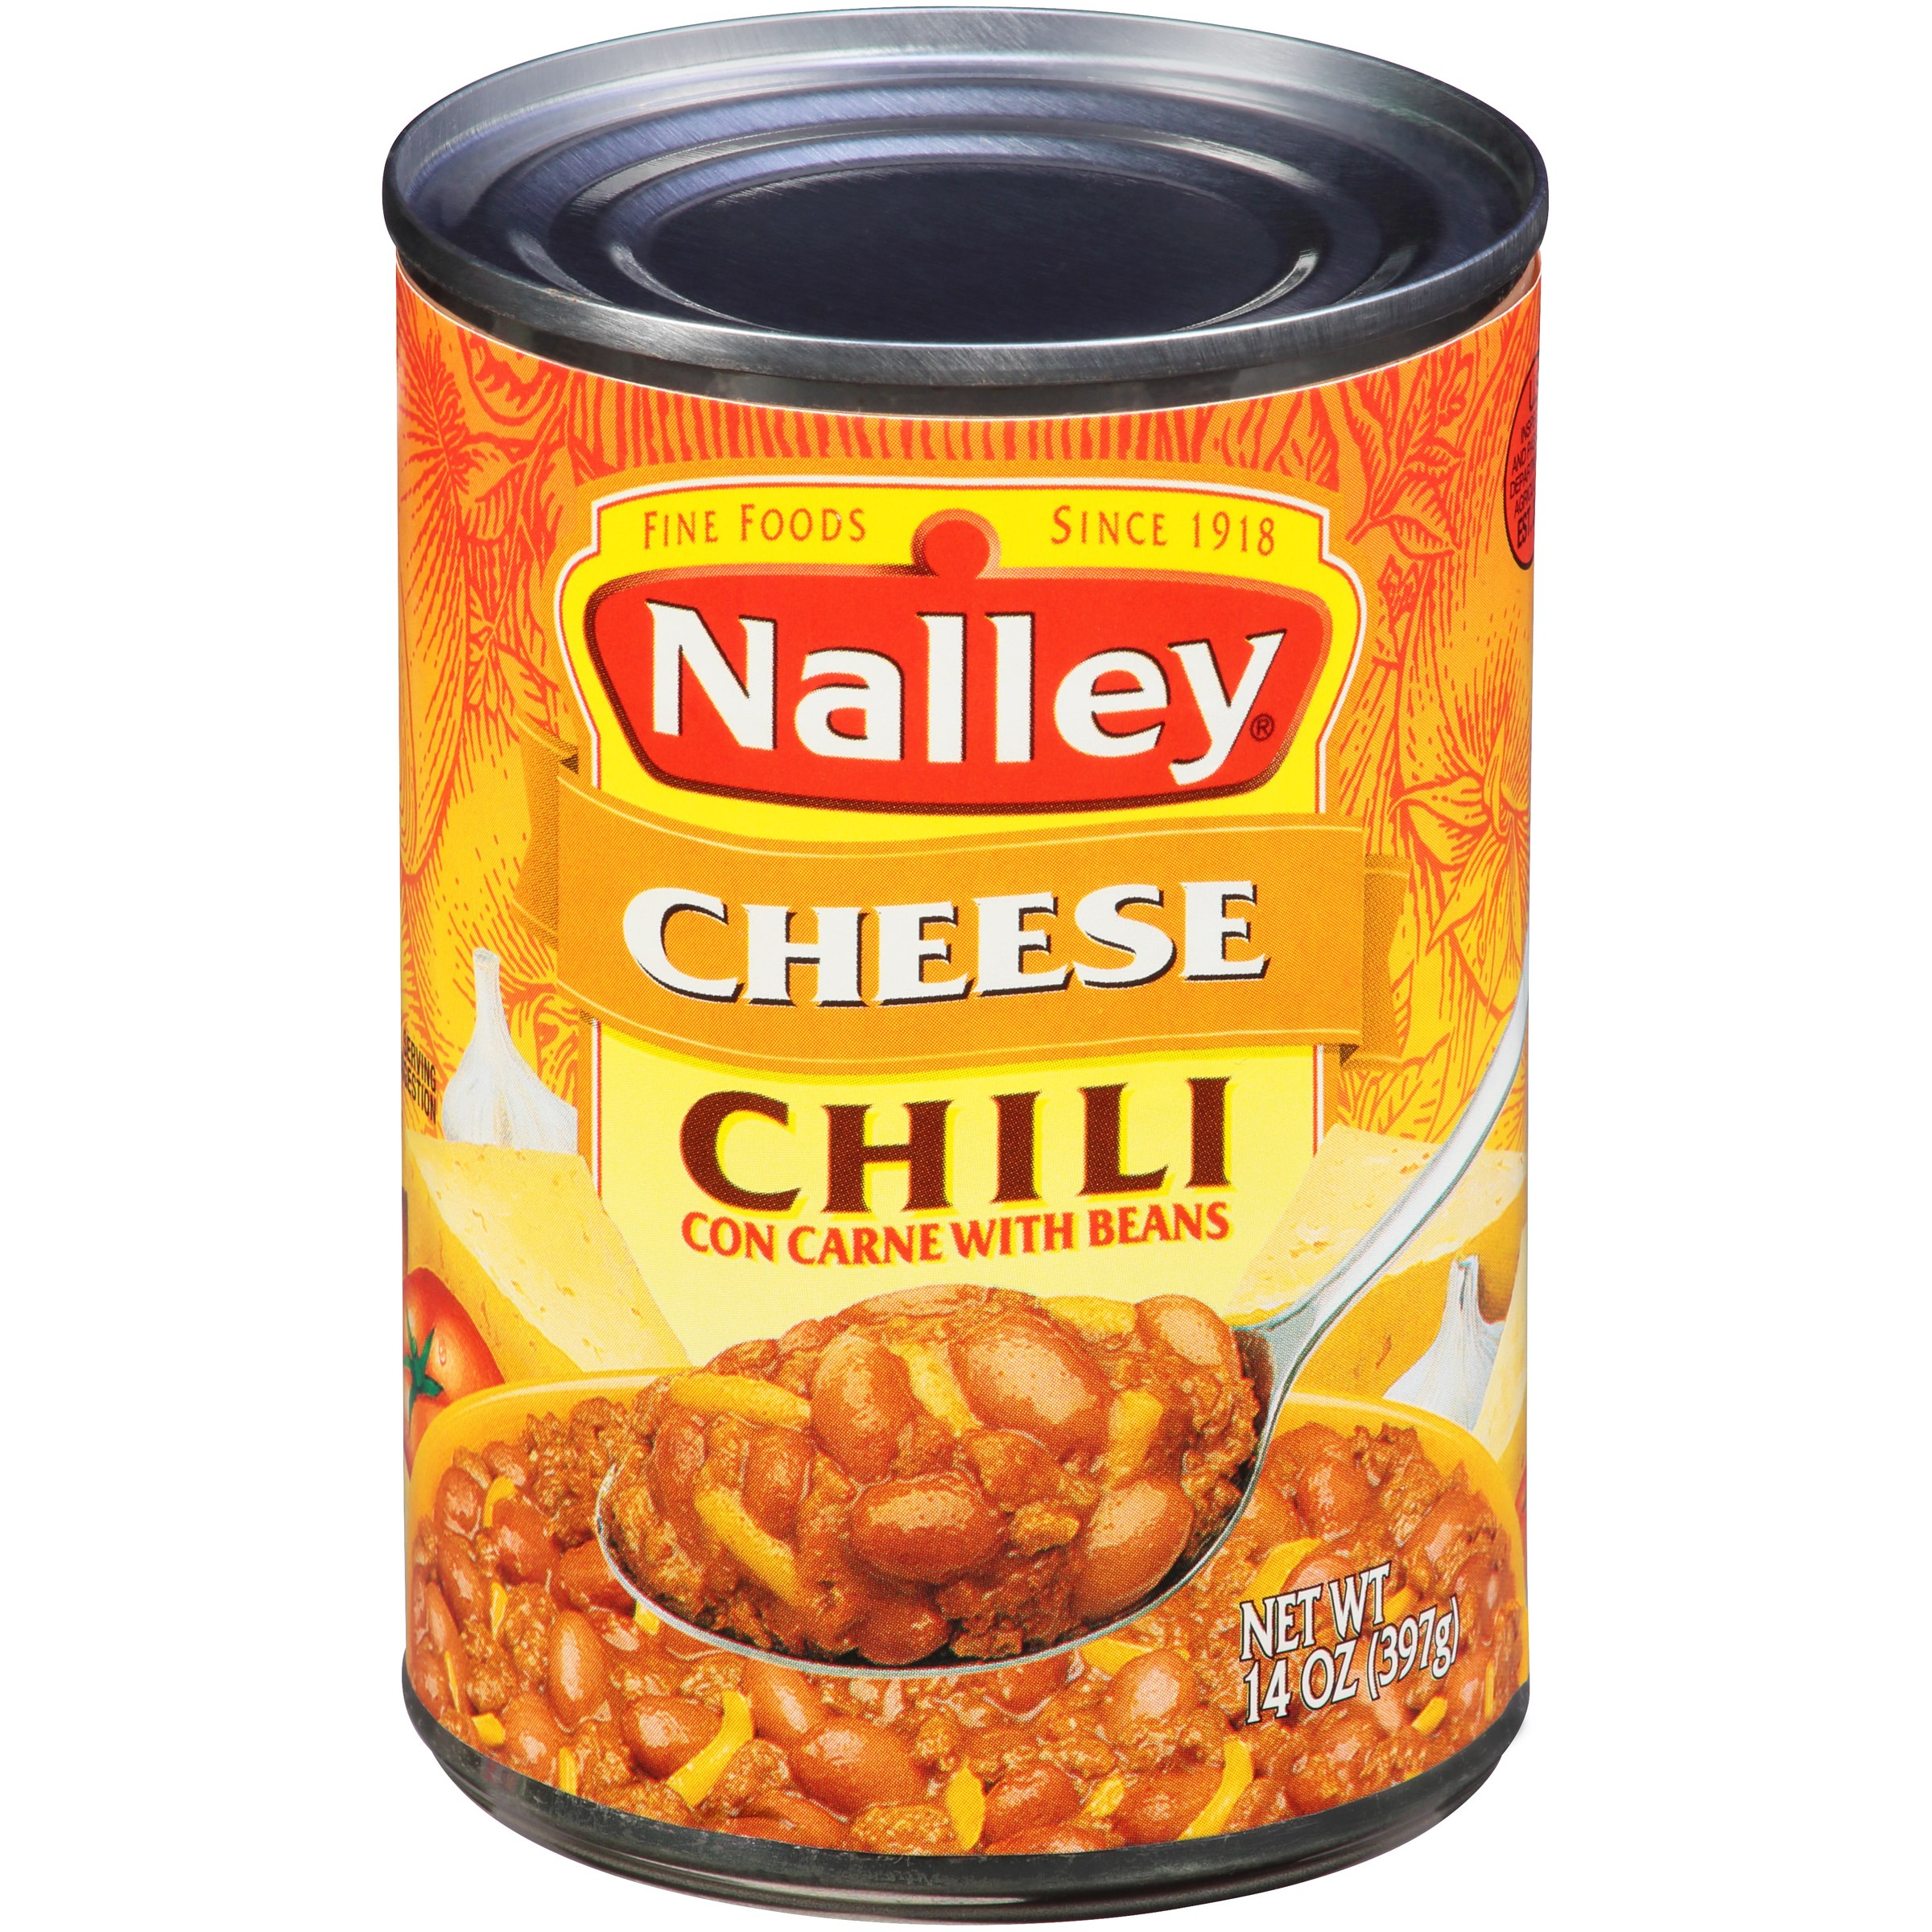 (6 Pack) Nalley Cheddar Cheese Chili Con Carne With Beans, 15 Oz